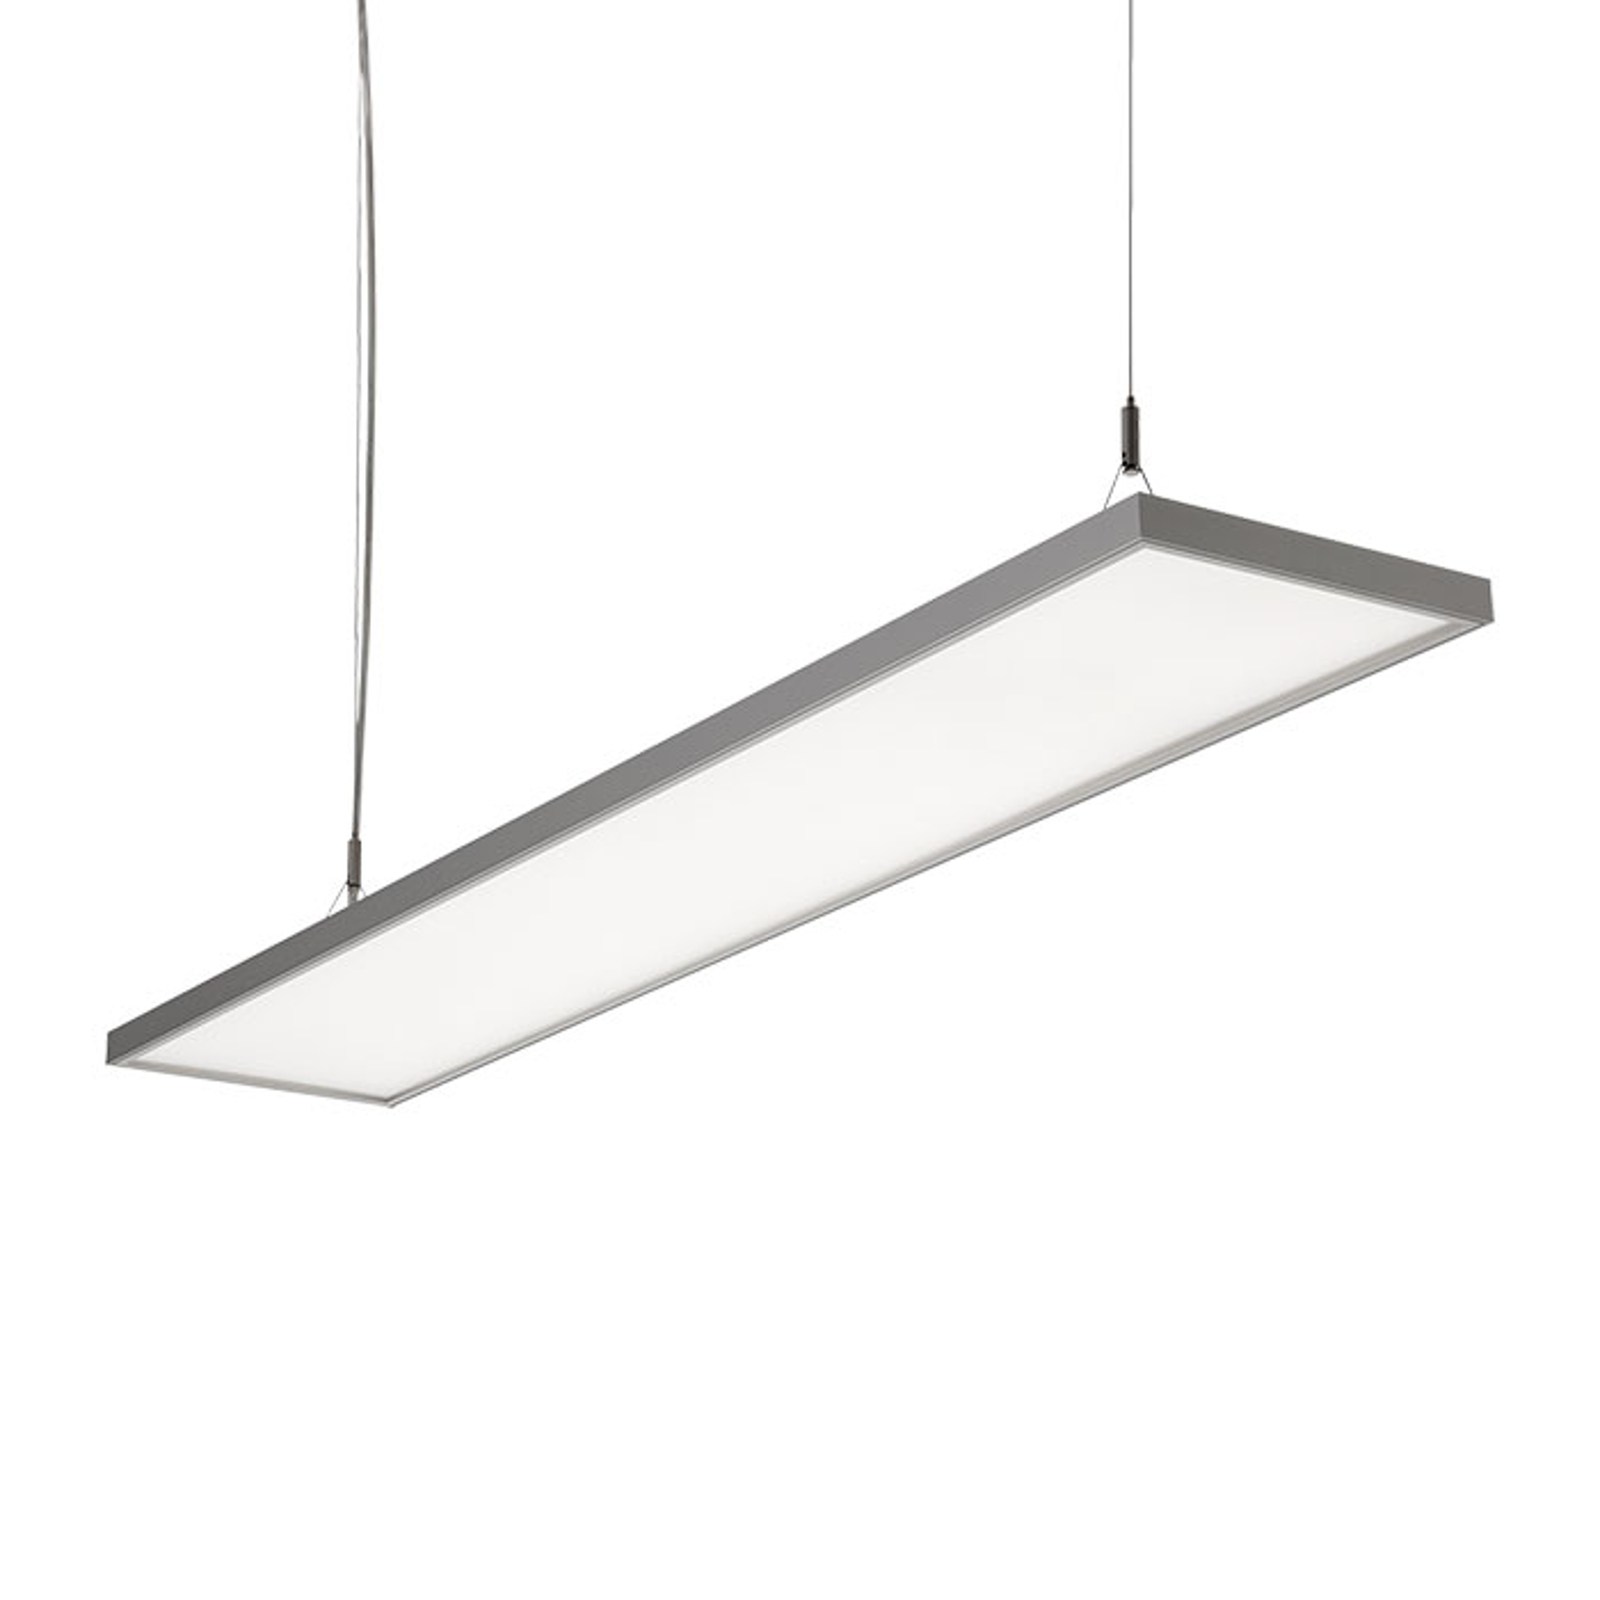 Suspension LED C95-P gris argenté 119,4cm dimmable